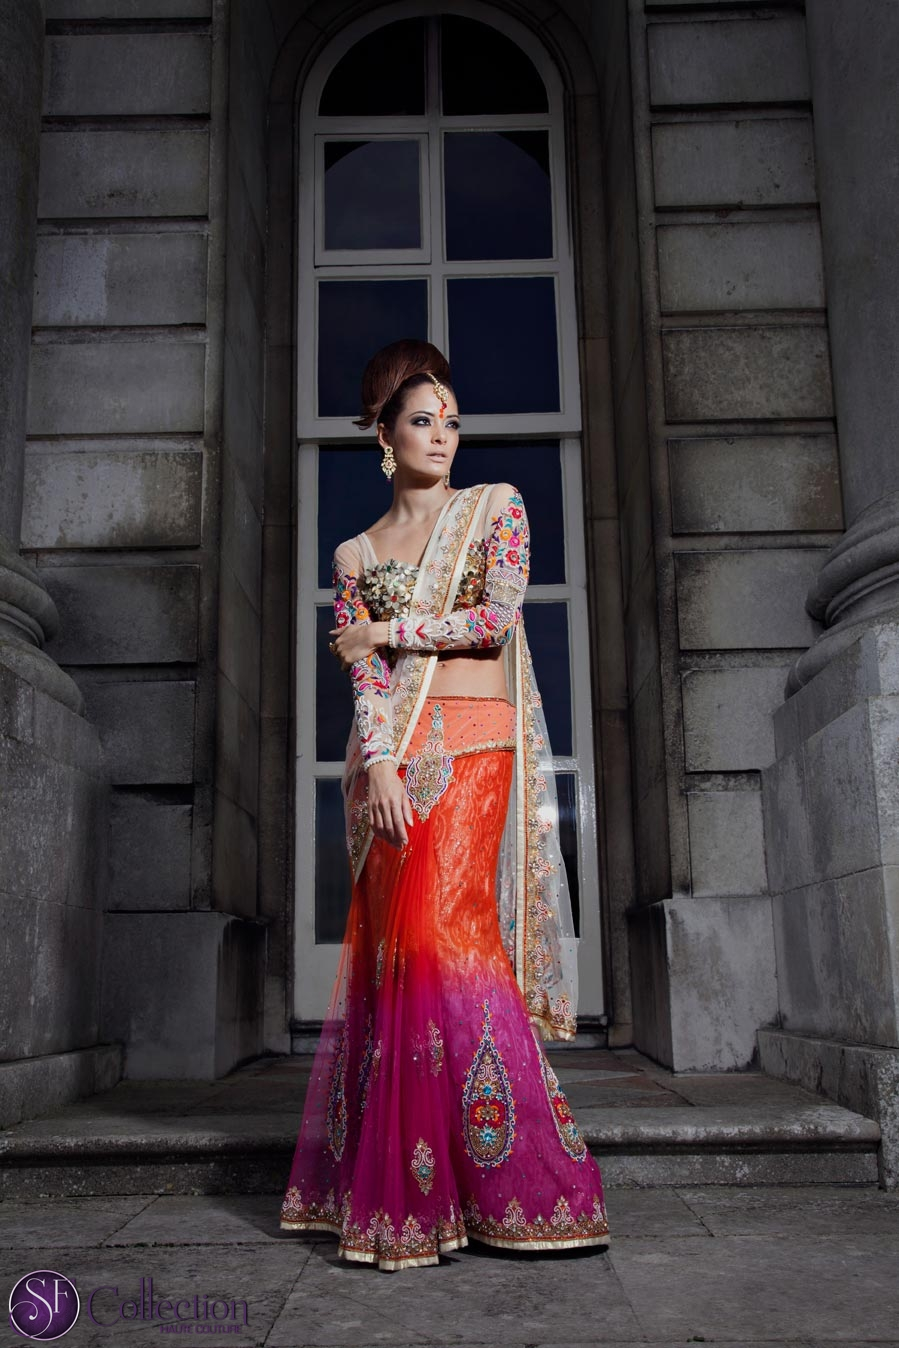 Indian Bridal Traditional Wear Indian Wedding Outfit ...